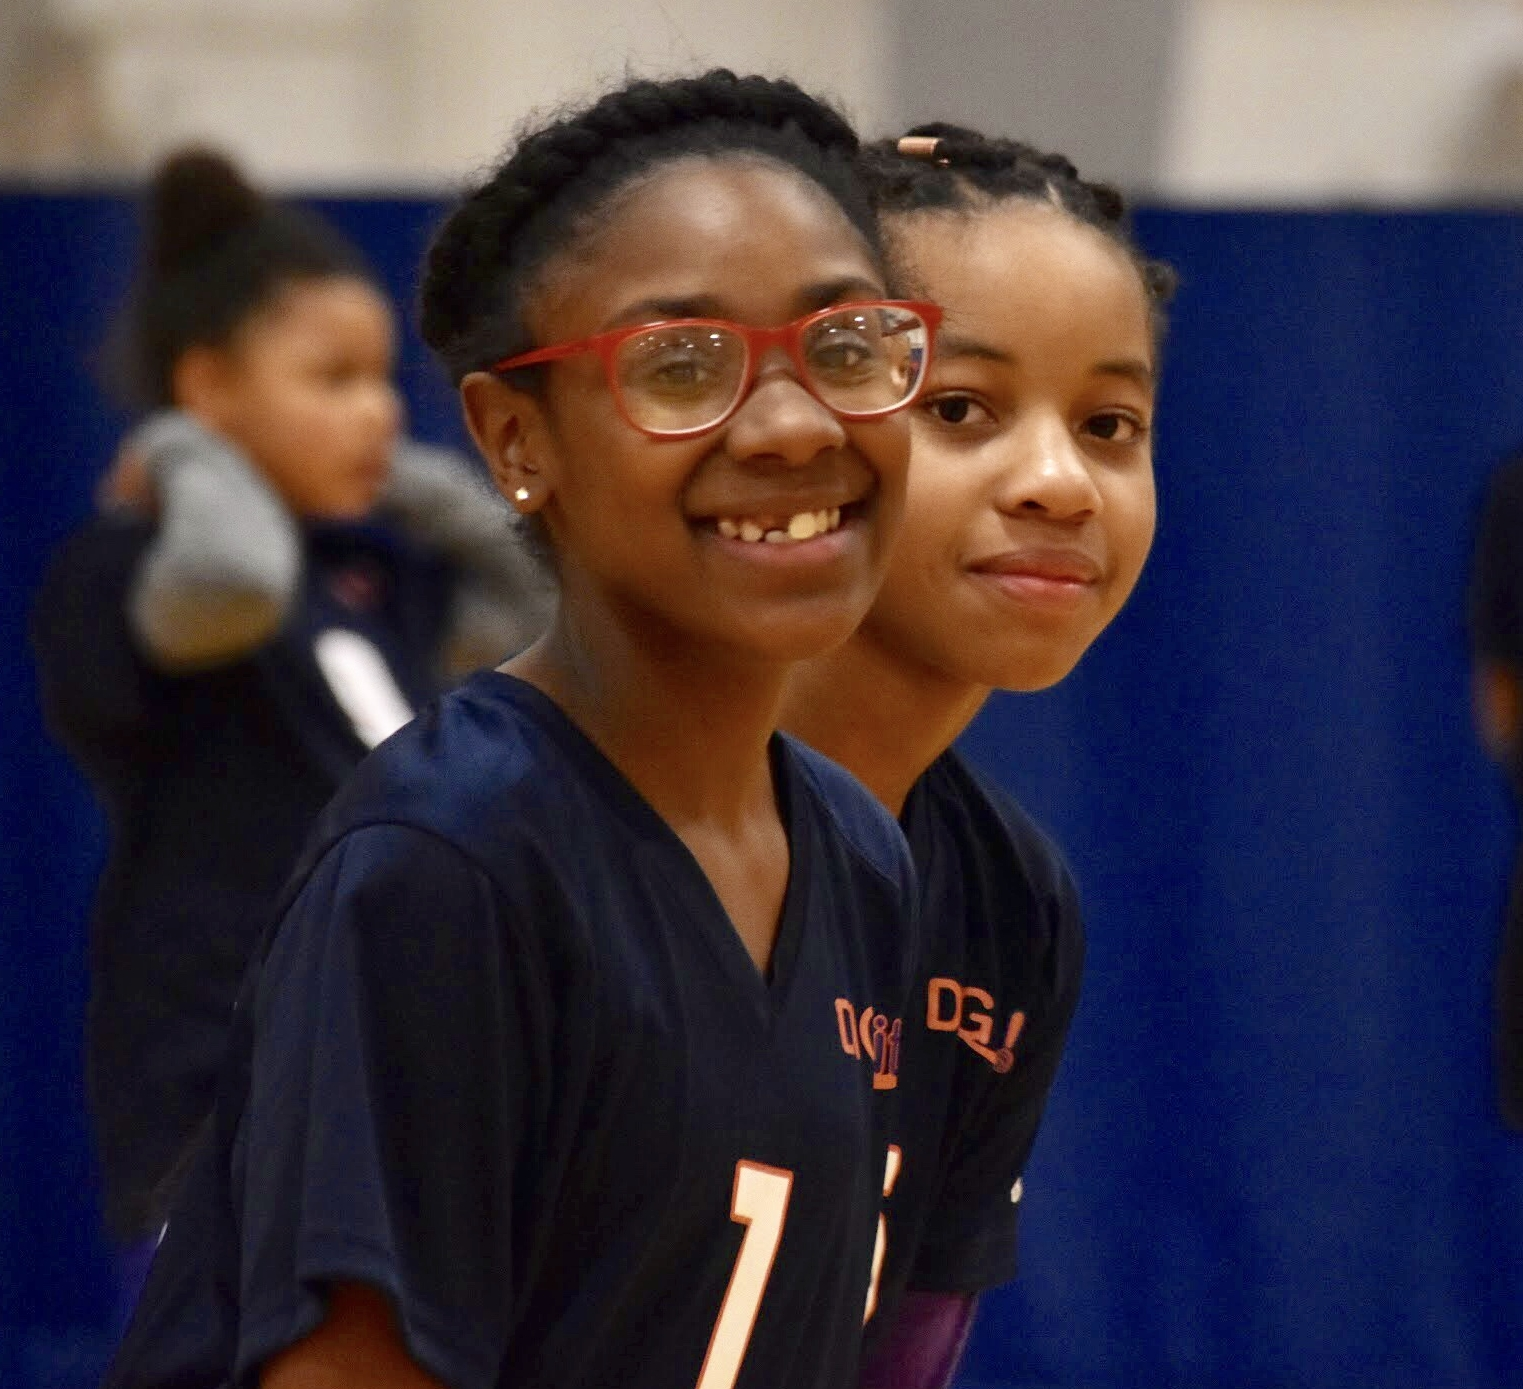 2018 Granneman BGCSTL DIG it! Volleyball players smiling during their matches on Friday, April 6th, 2018.